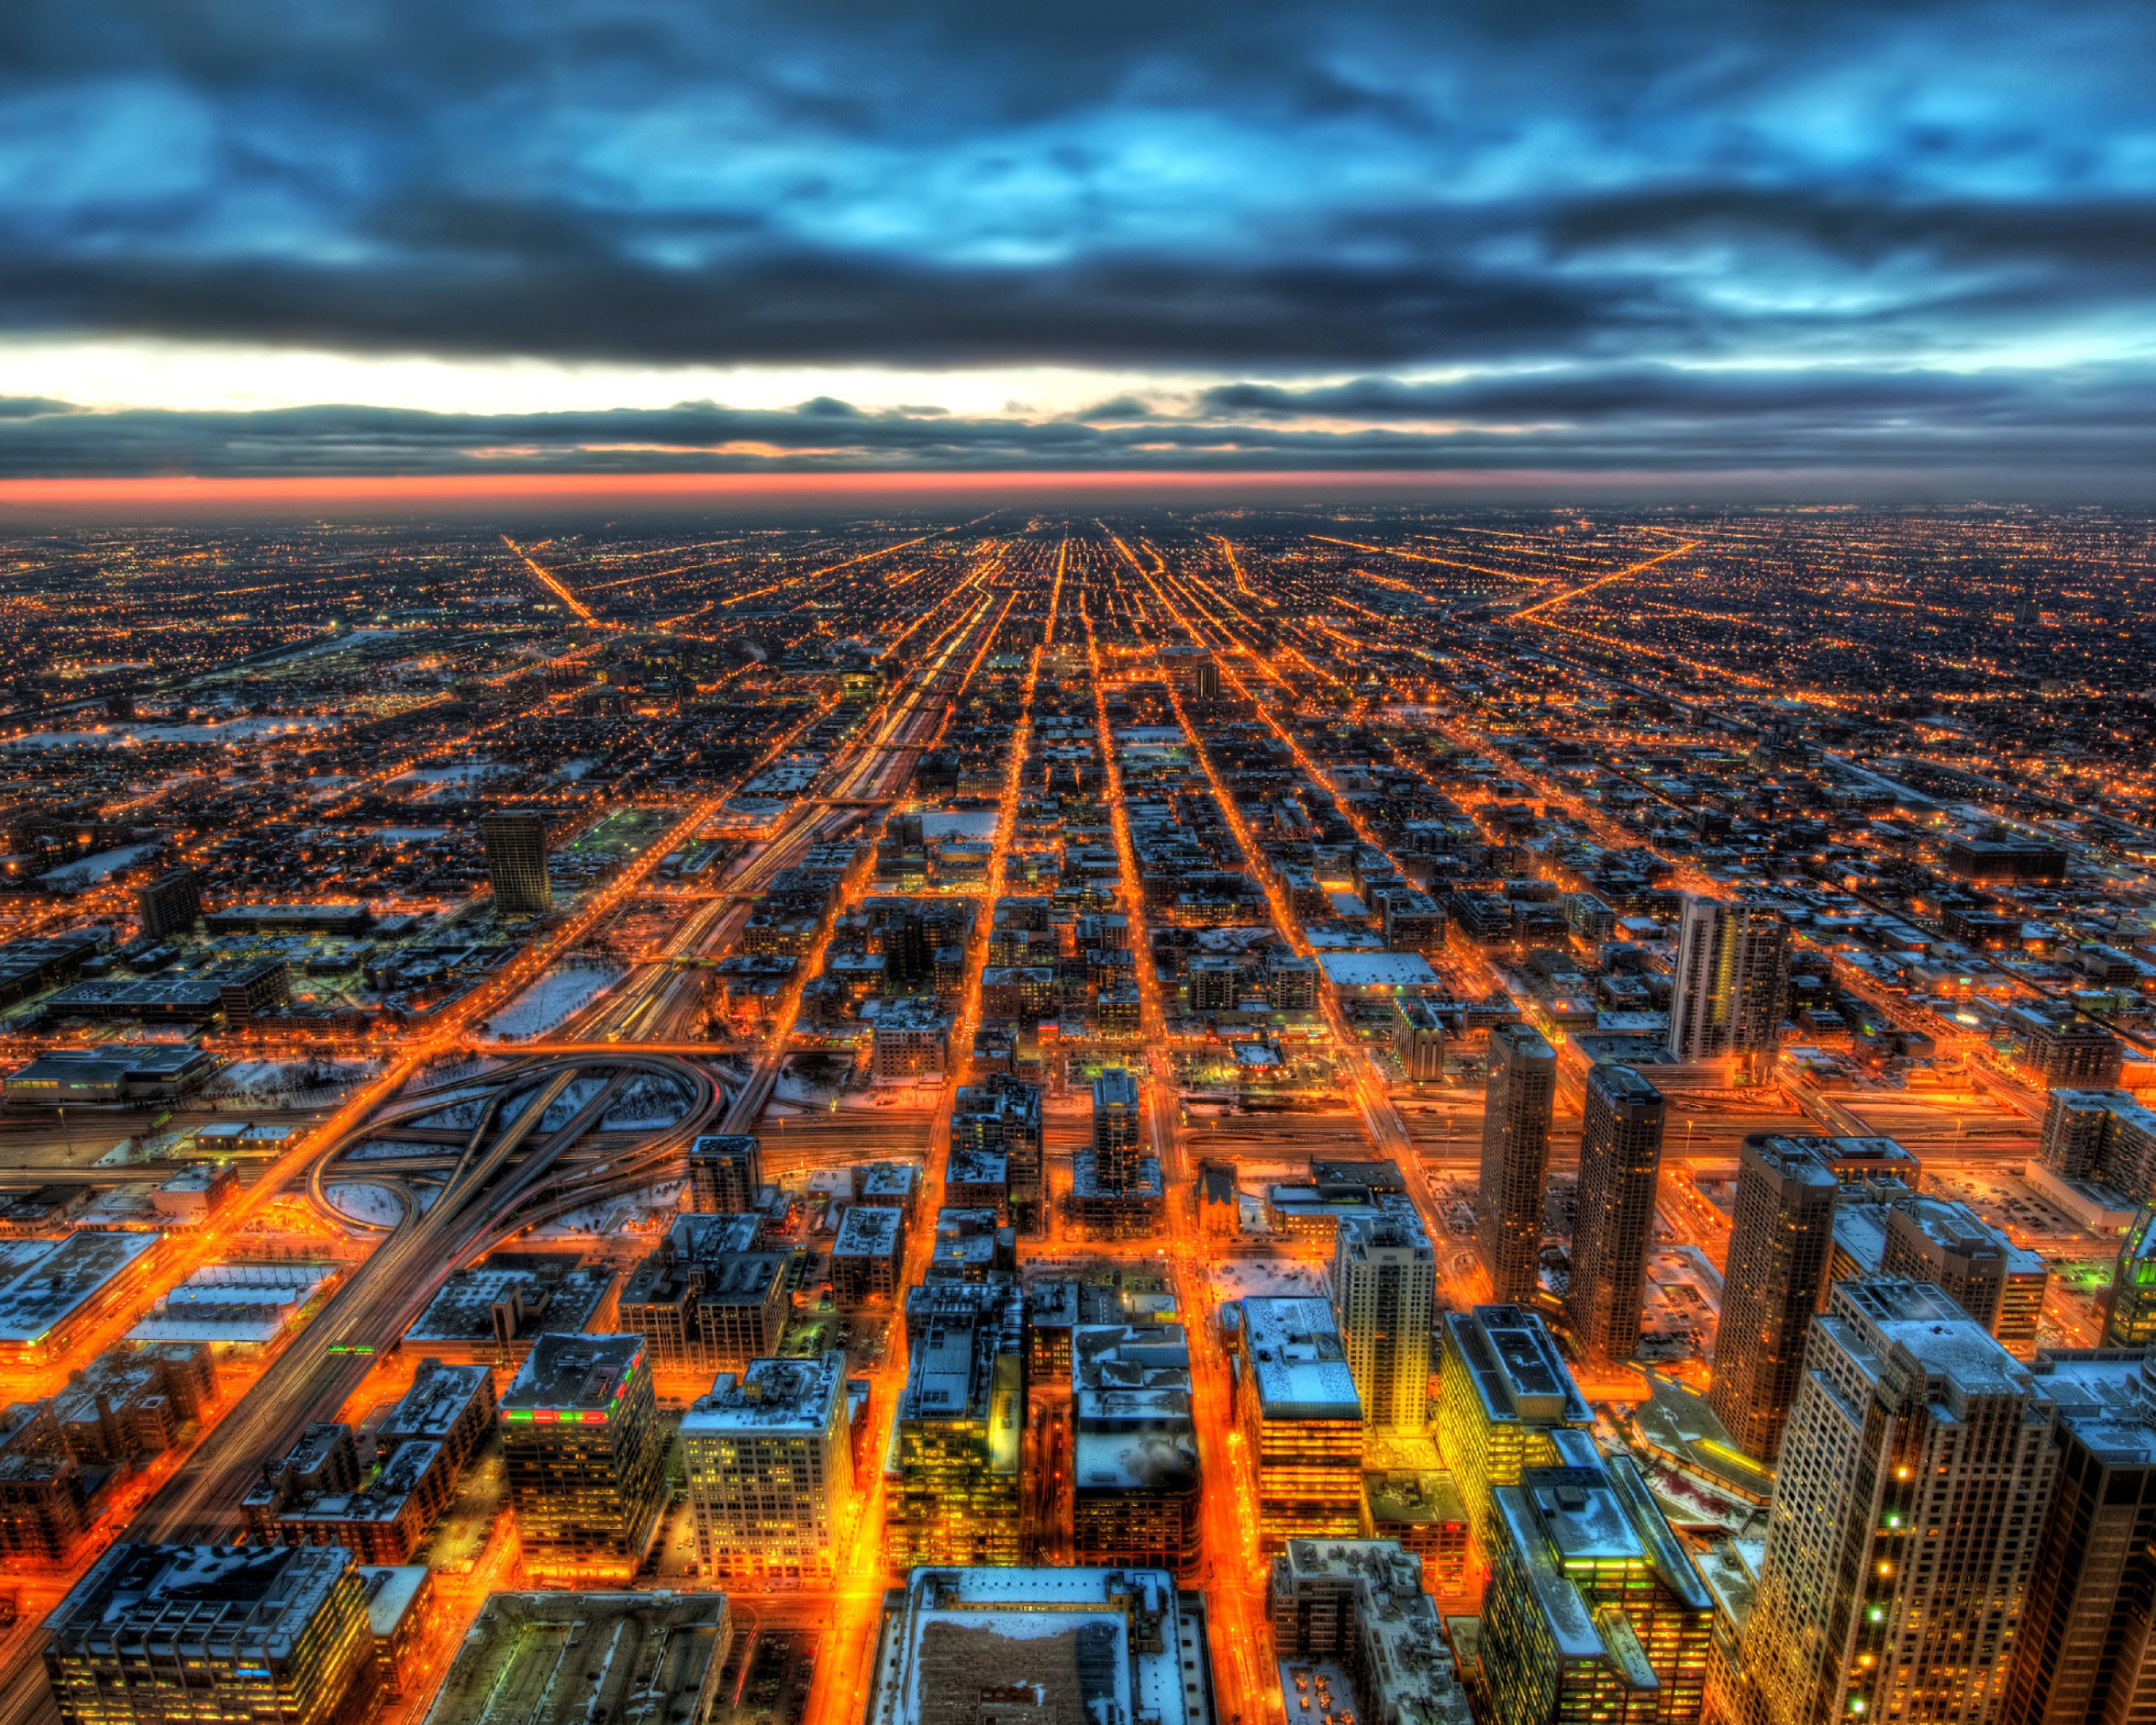 2560x2048 Chicago Hdr Data Id 93653 Data Src Walls Full F A 1 93653 Hdr Wallpaper 4k 2560x2048 Download Hd Wallpaper Wallpapertip